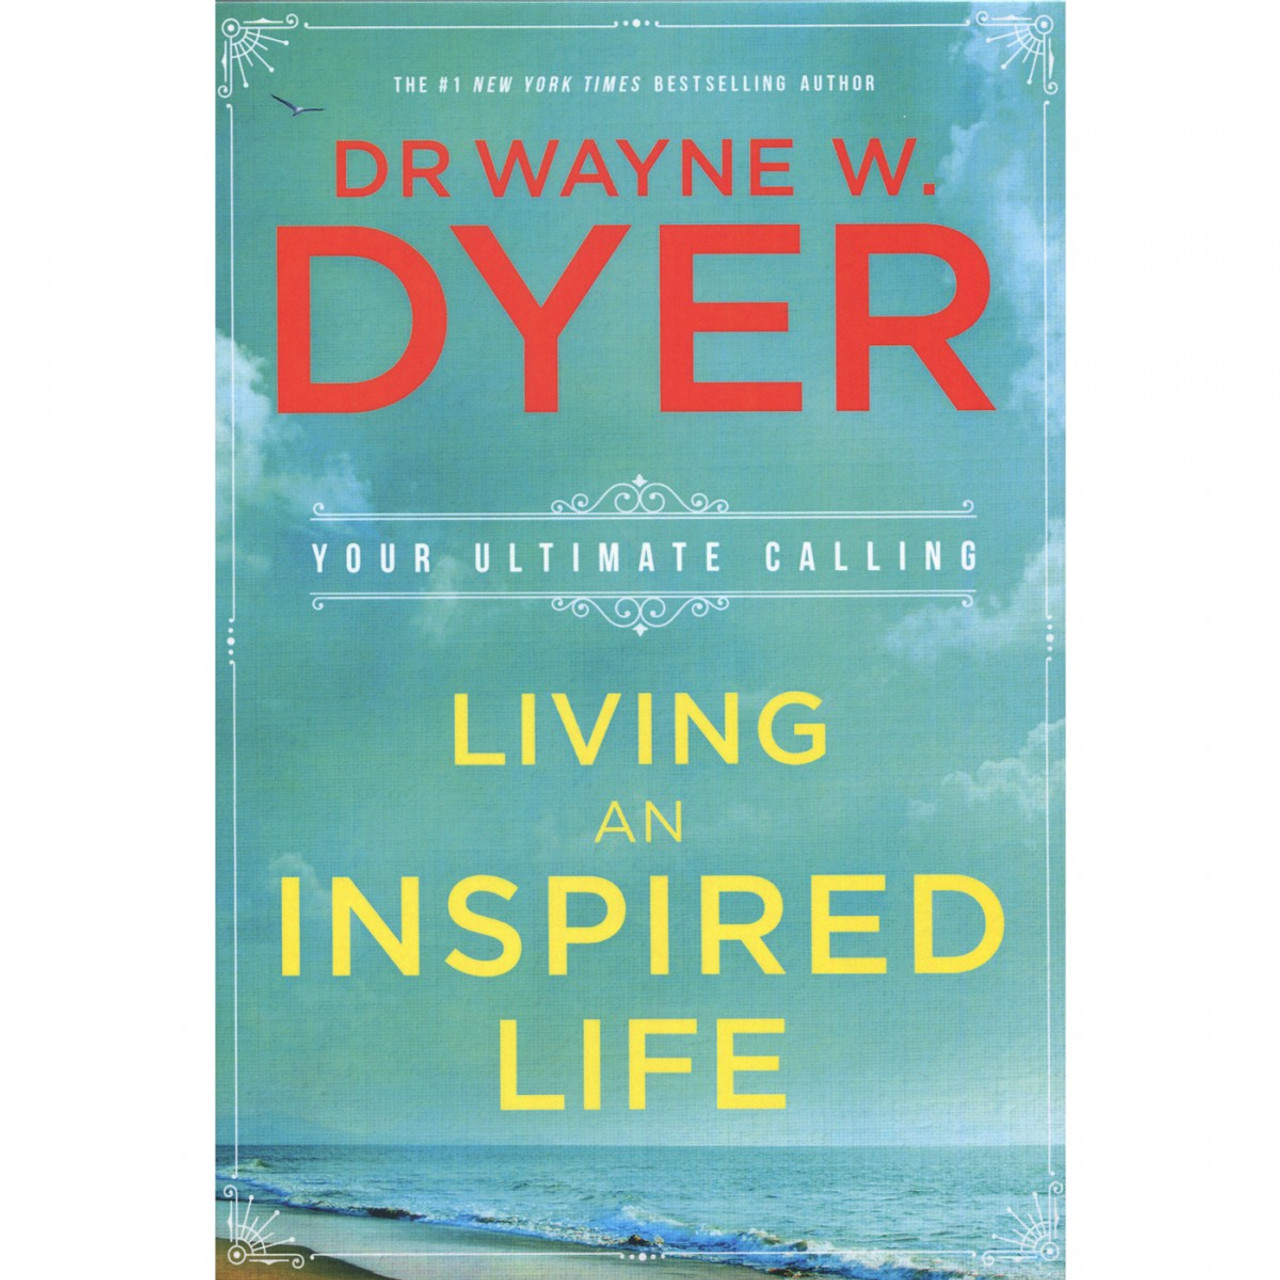 Living An Inspired Life by Wayne Dyer